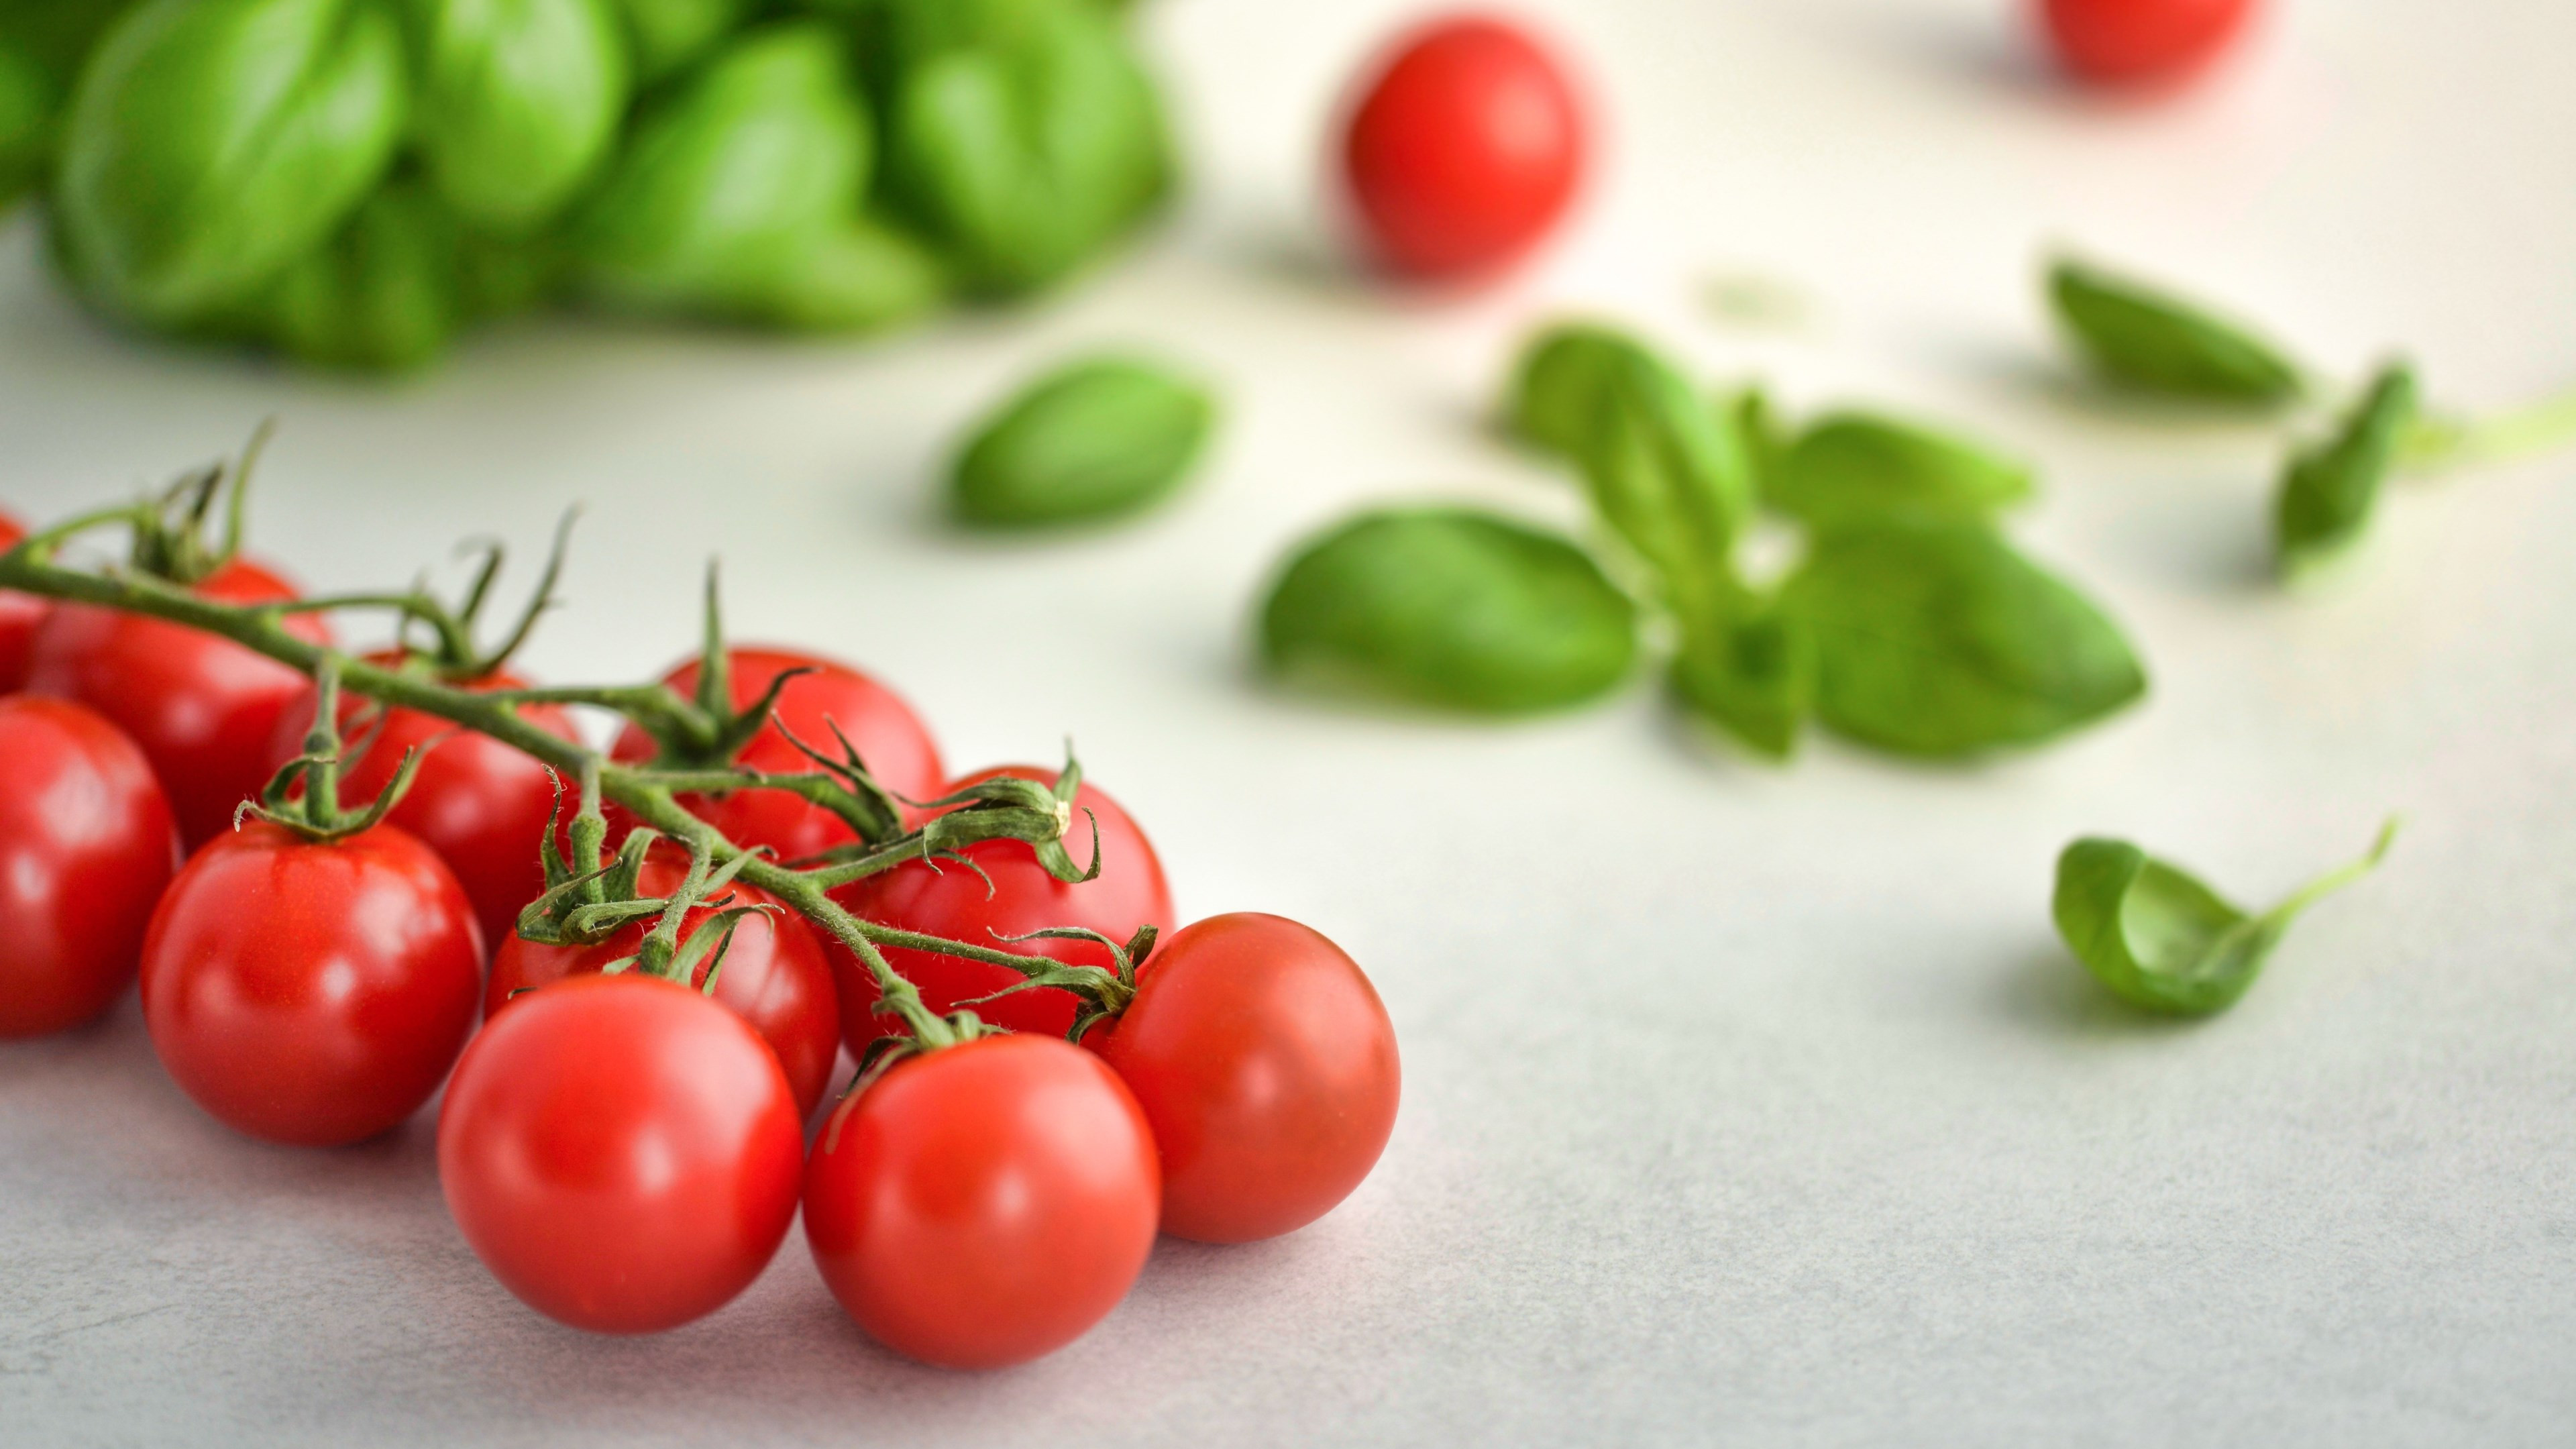 Tomatoes and basil wallpaper 3840x2160